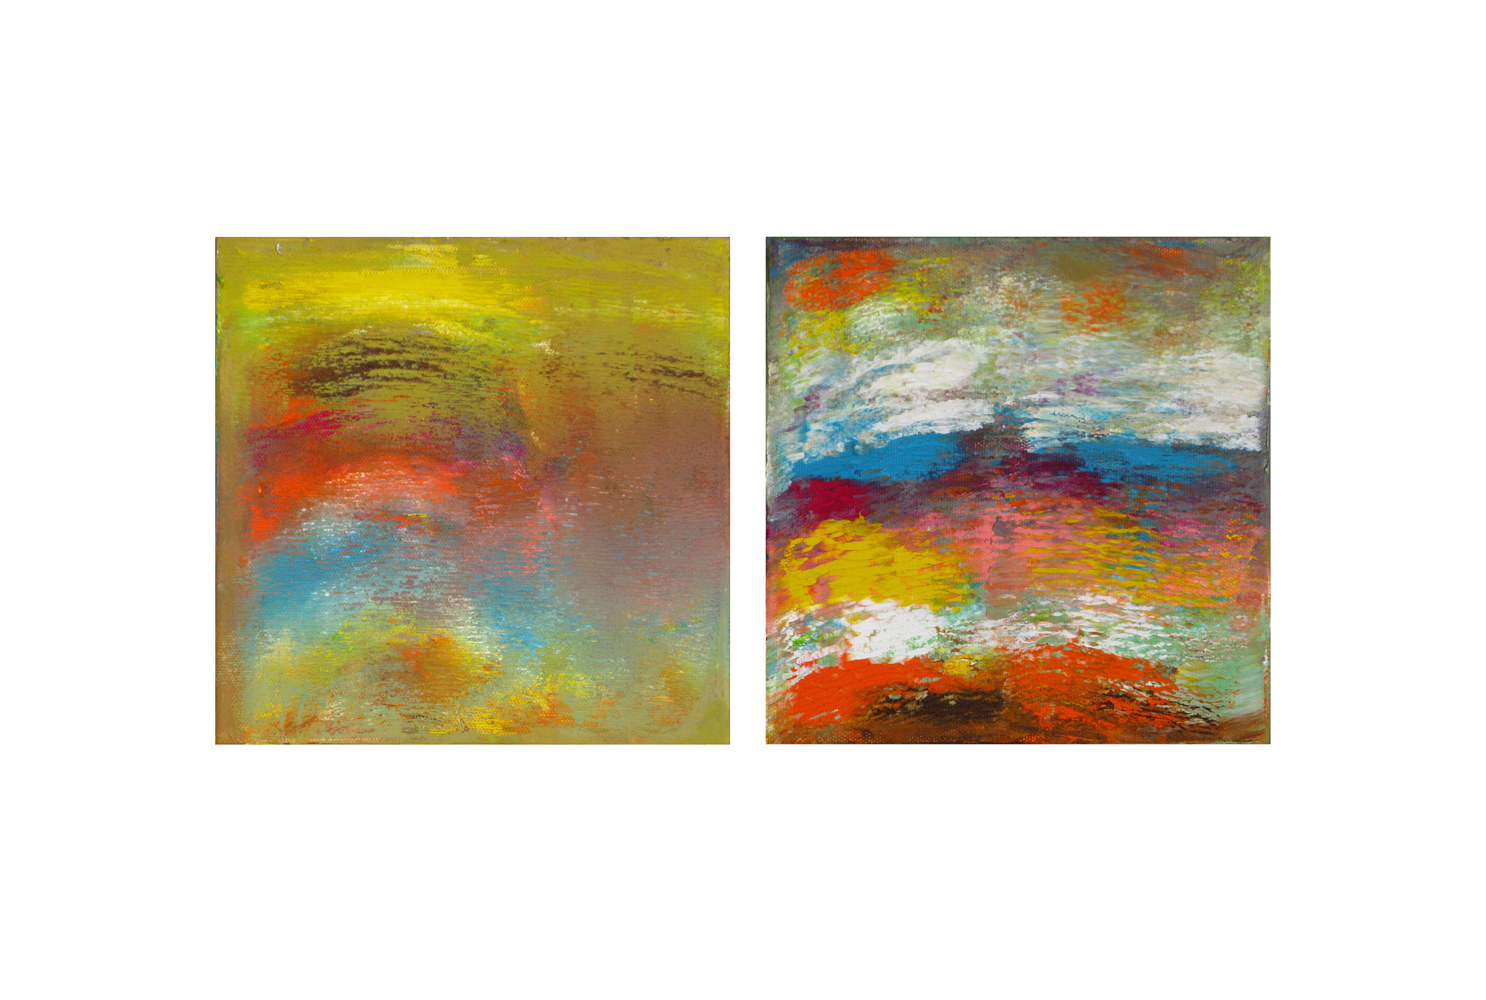 Acrylic painting Color Storm Rainbow, 8x8 inches each by Hooshang Khorasani